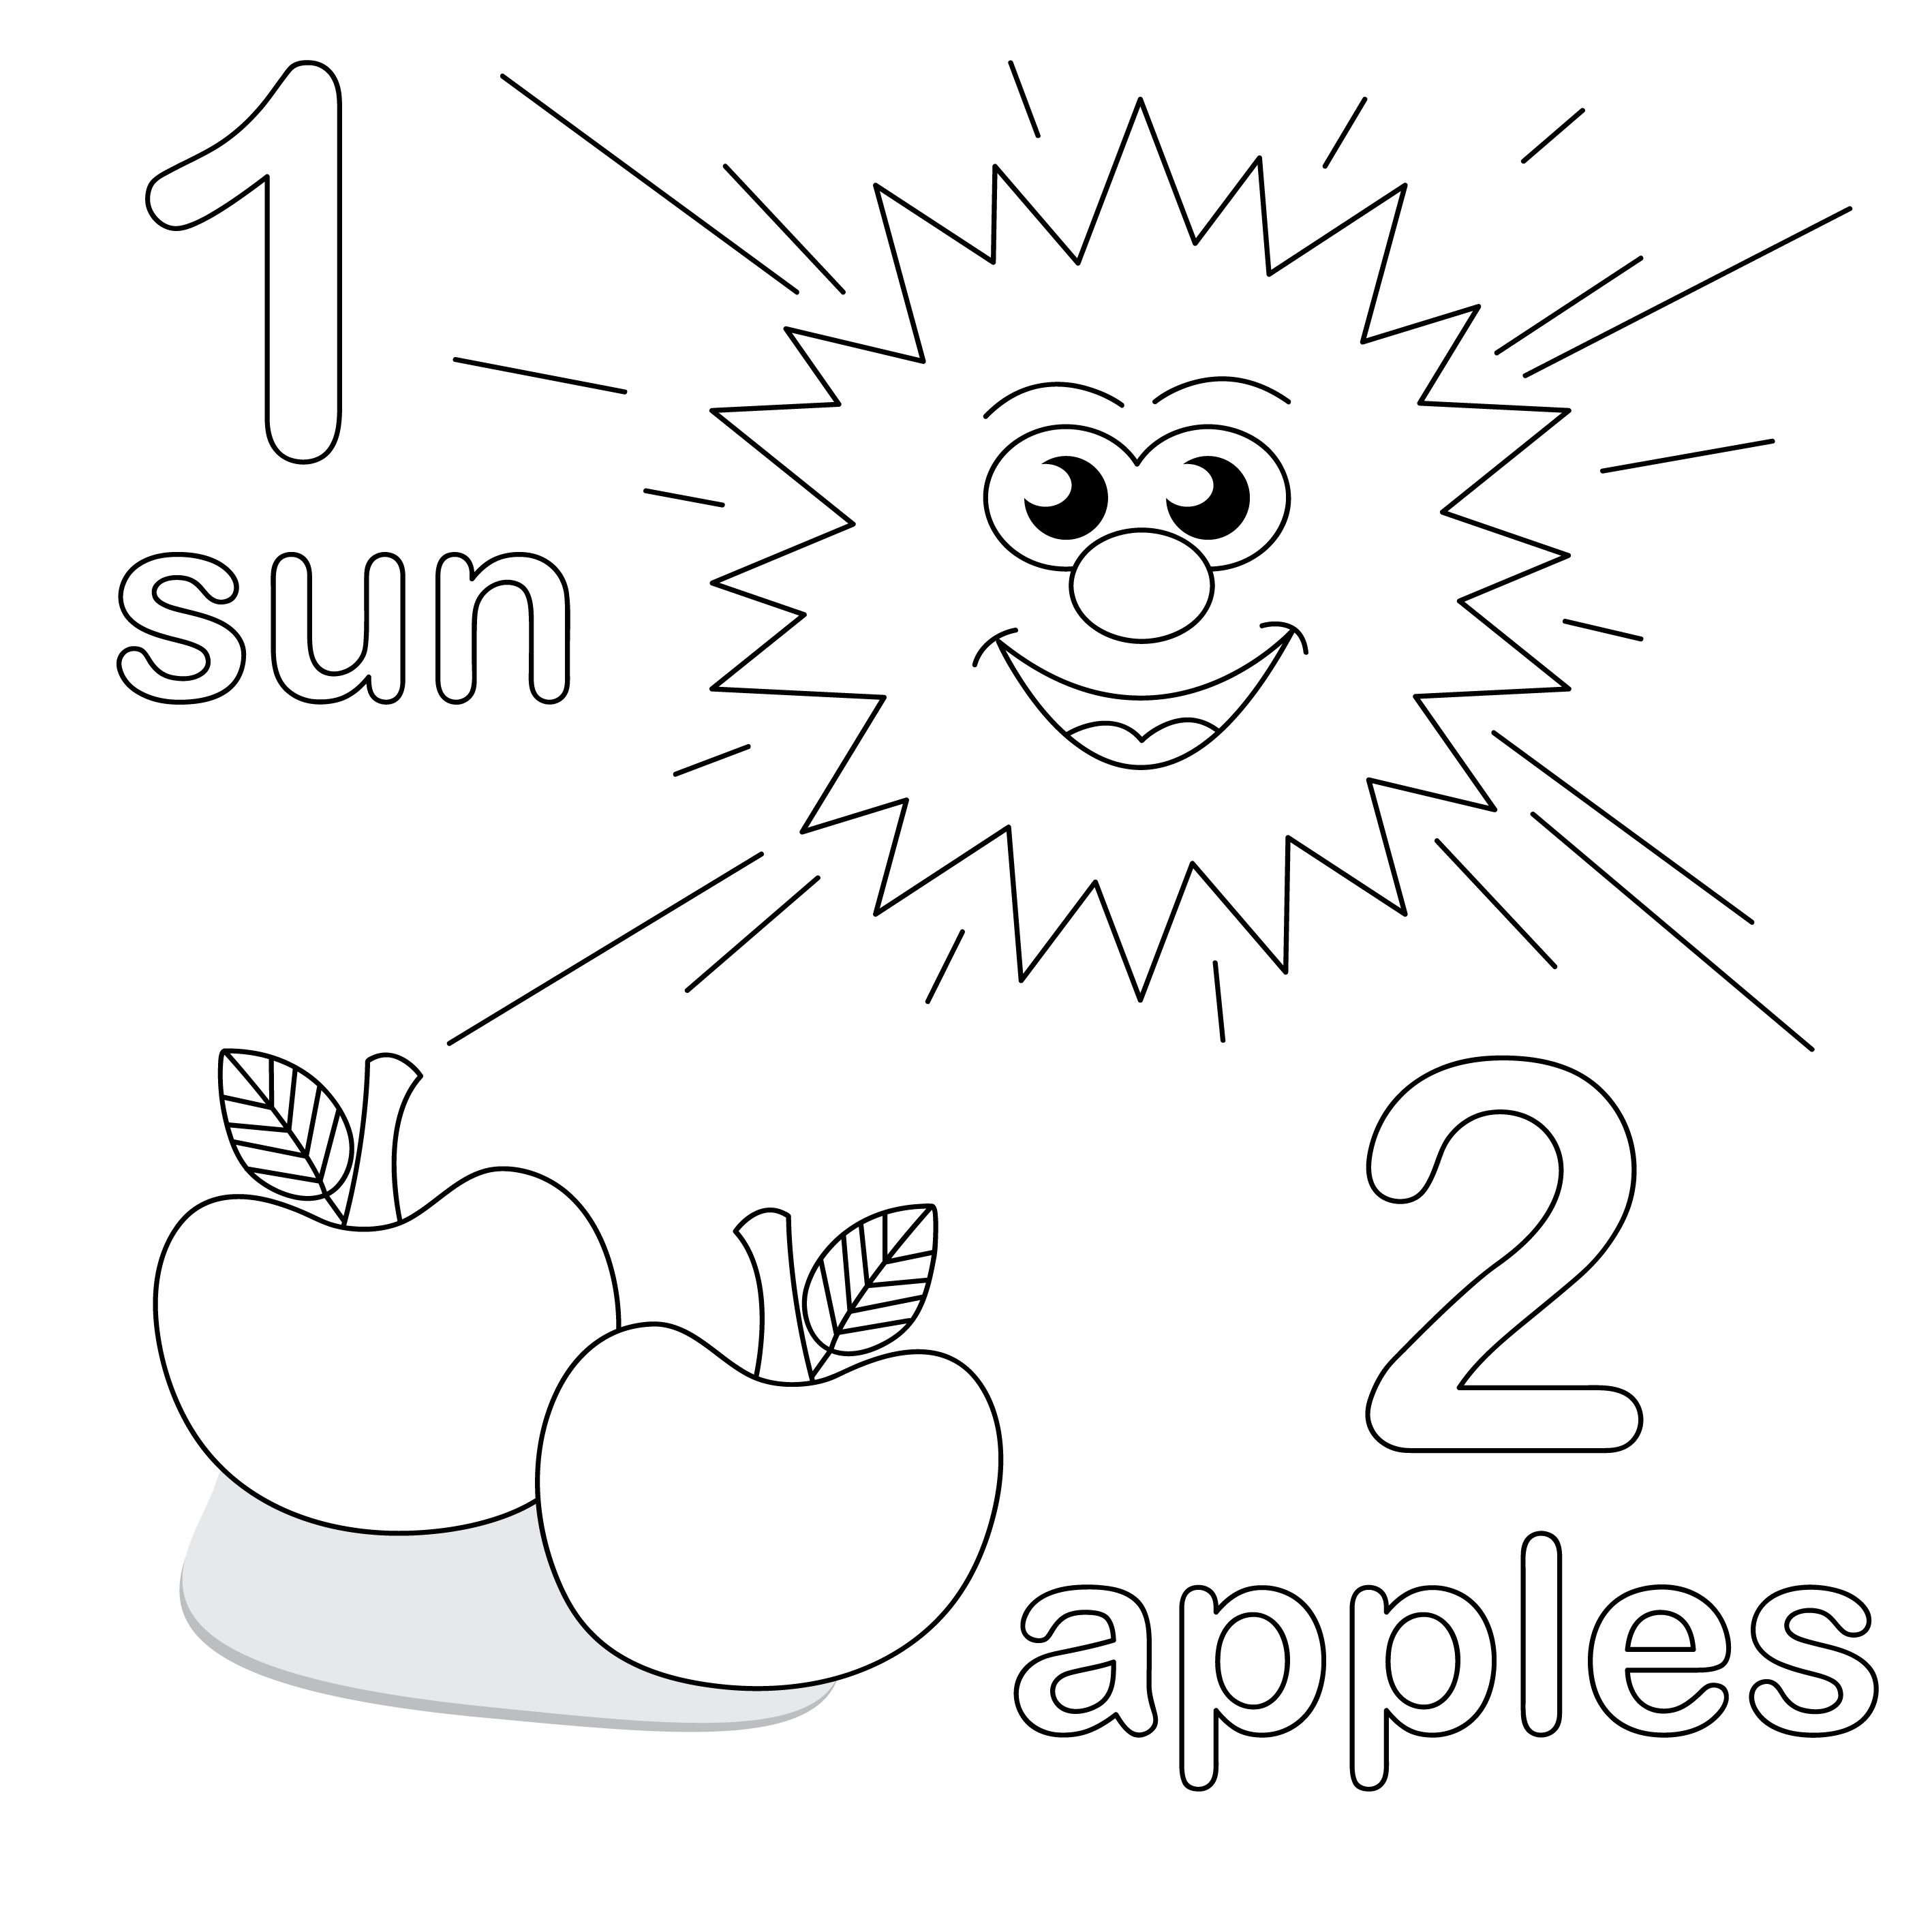 Number 3 coloring pages for toddlers designs canvas